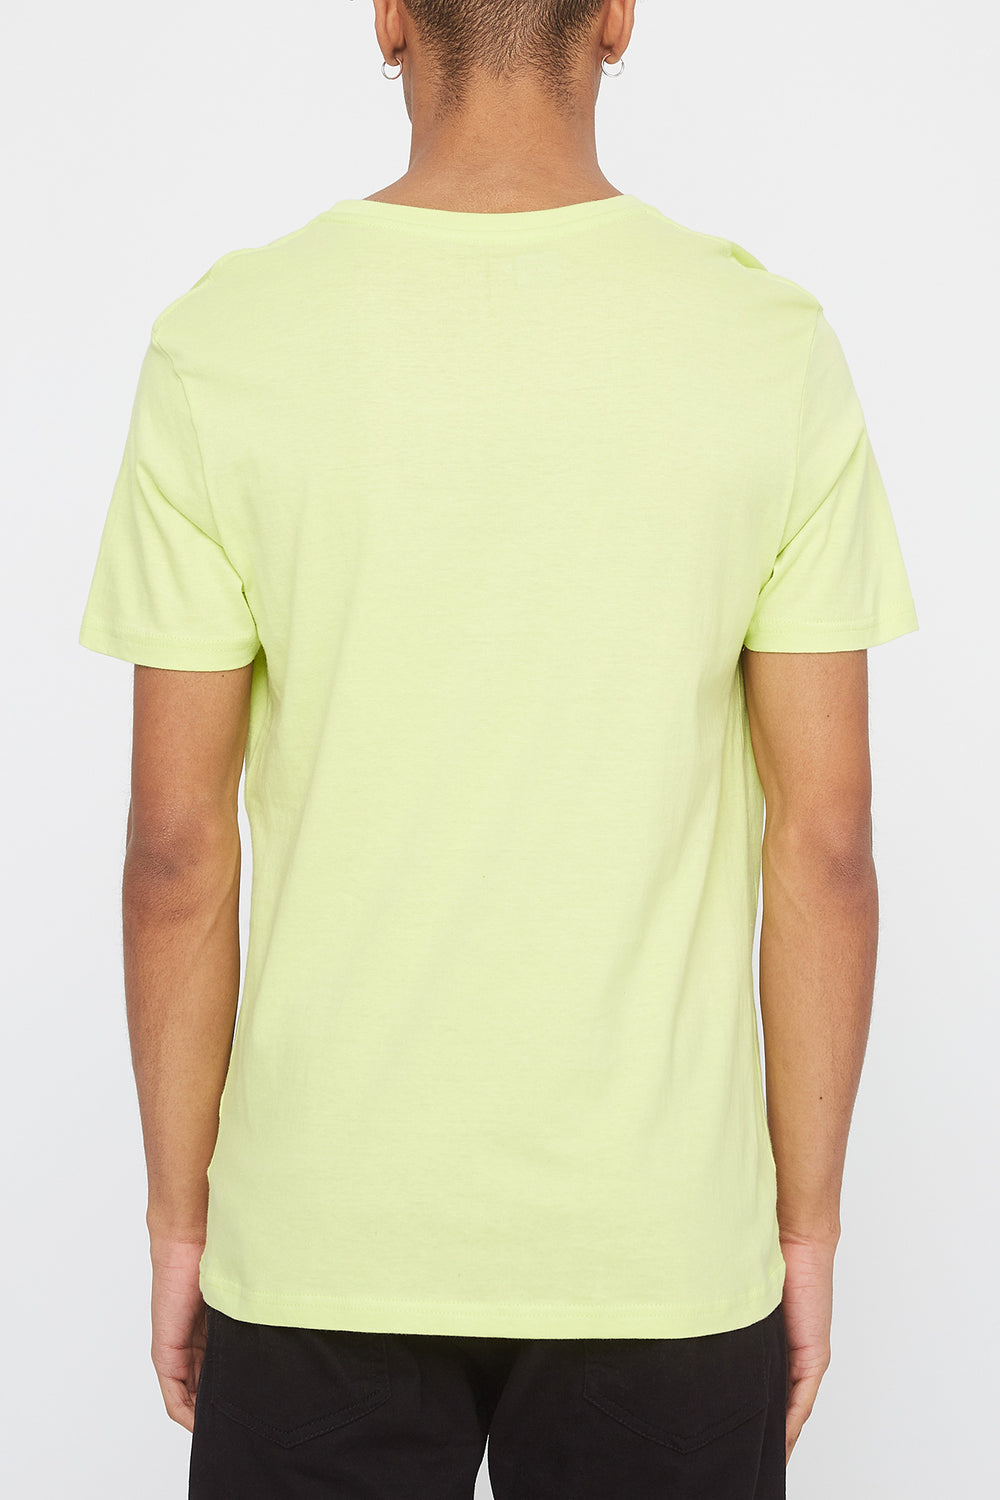 T-Shirt Logo Gradient Young & Reckless Homme Vert fluo